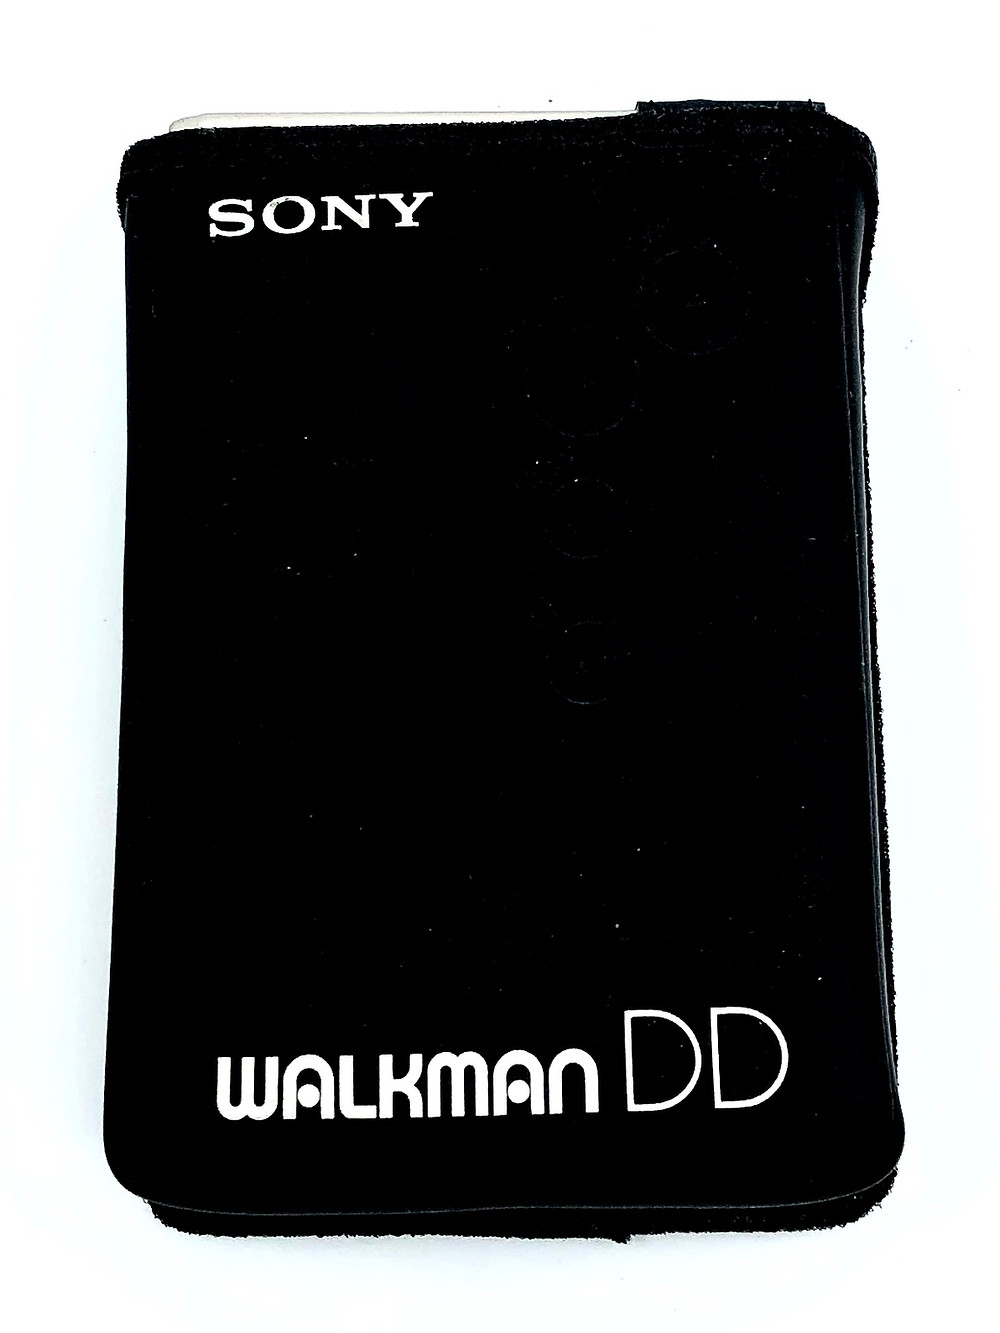 Sony Walkman DDI Champagne Portable Cassette Player